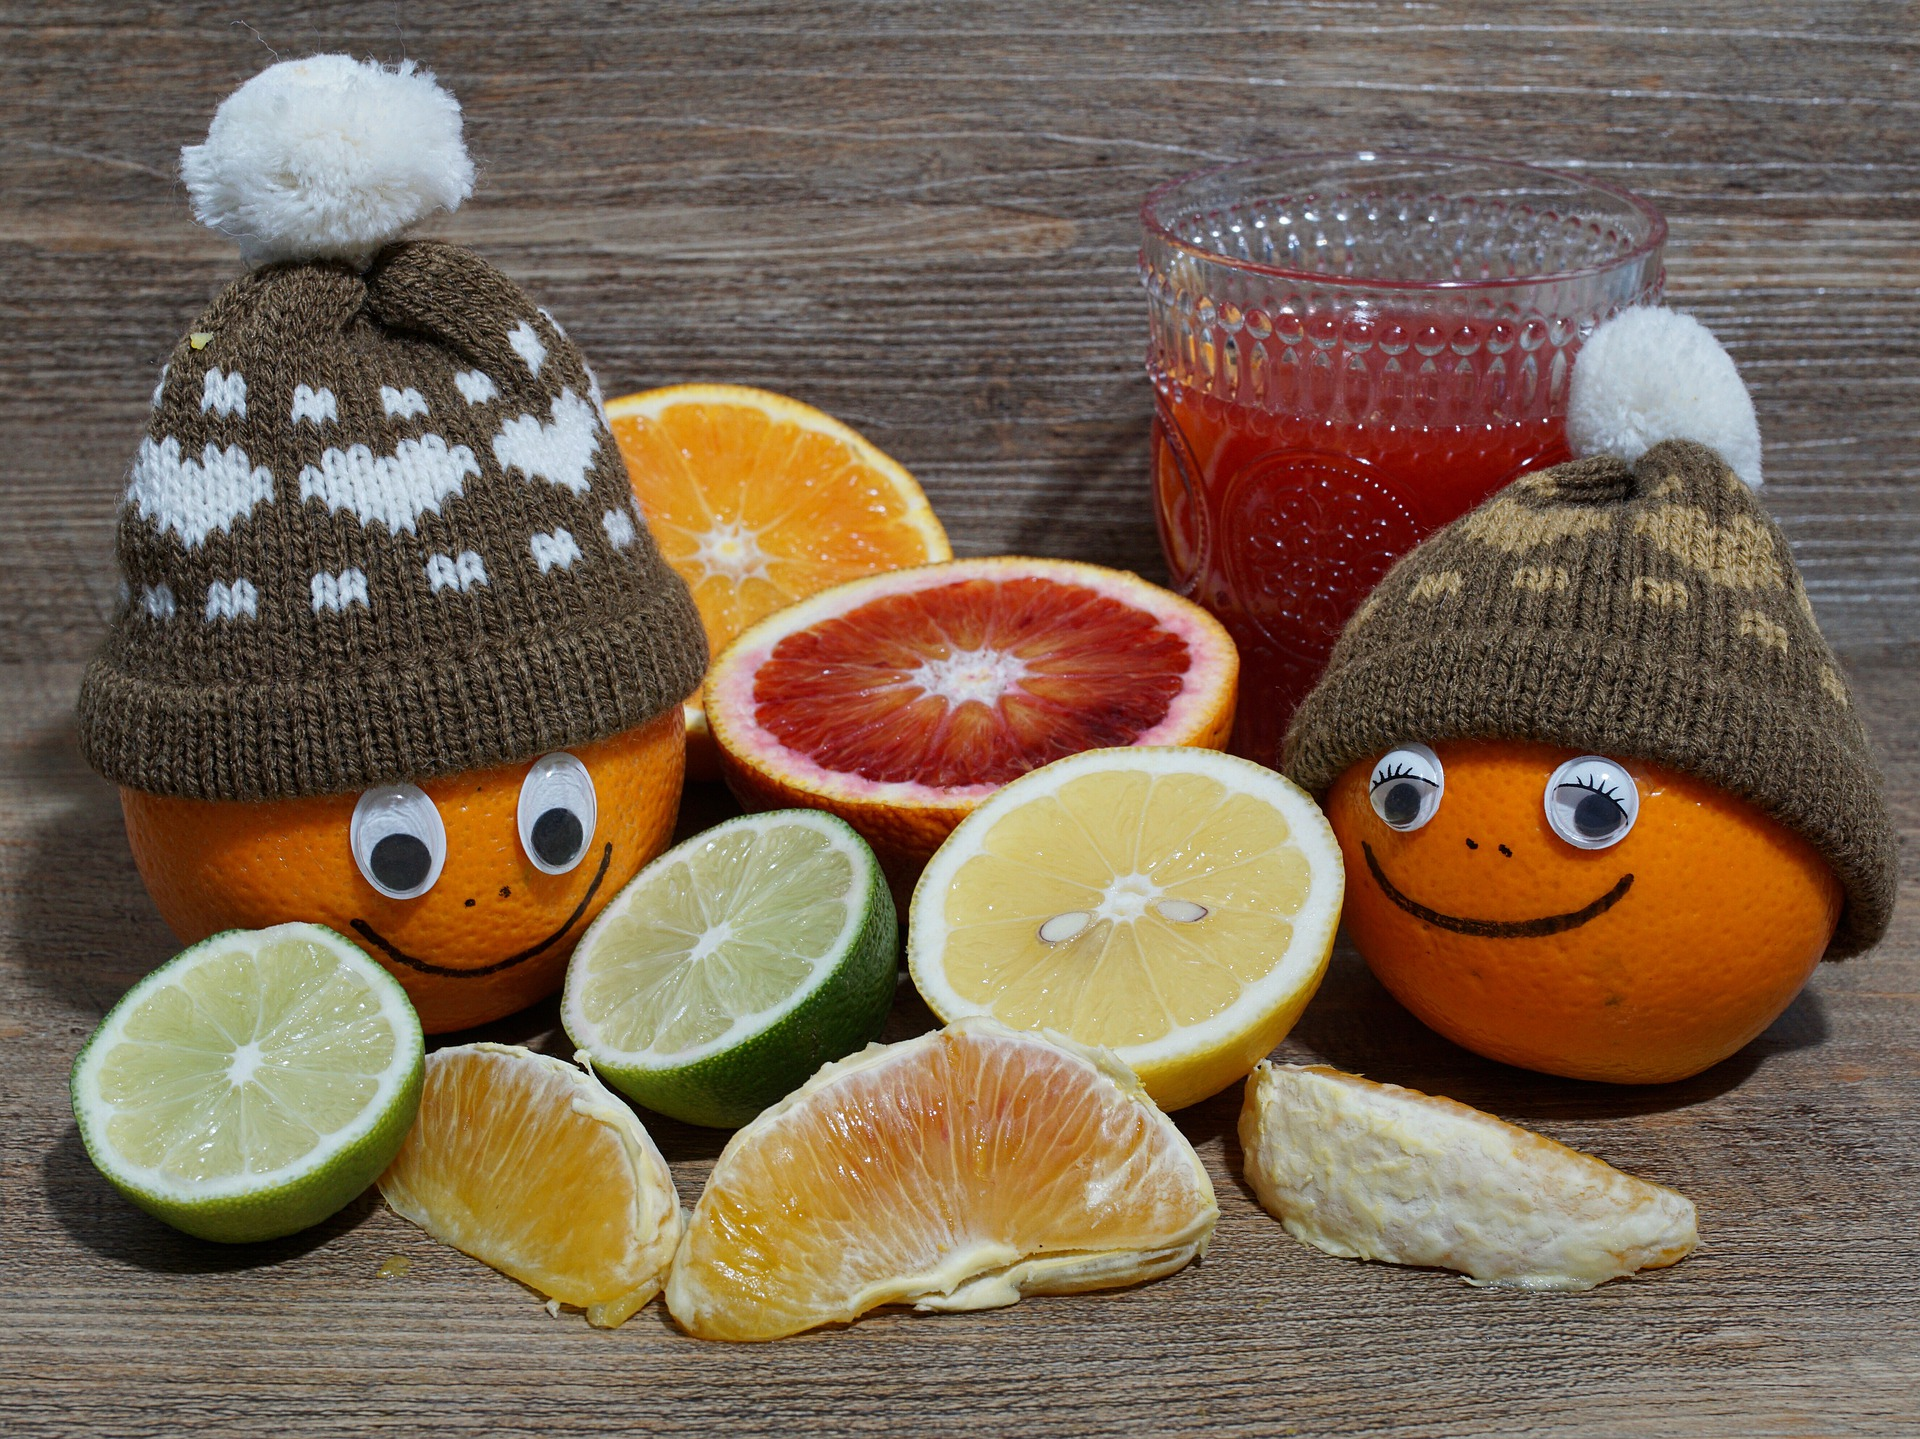 Top 5 Benefits and Sources of Vitamin C